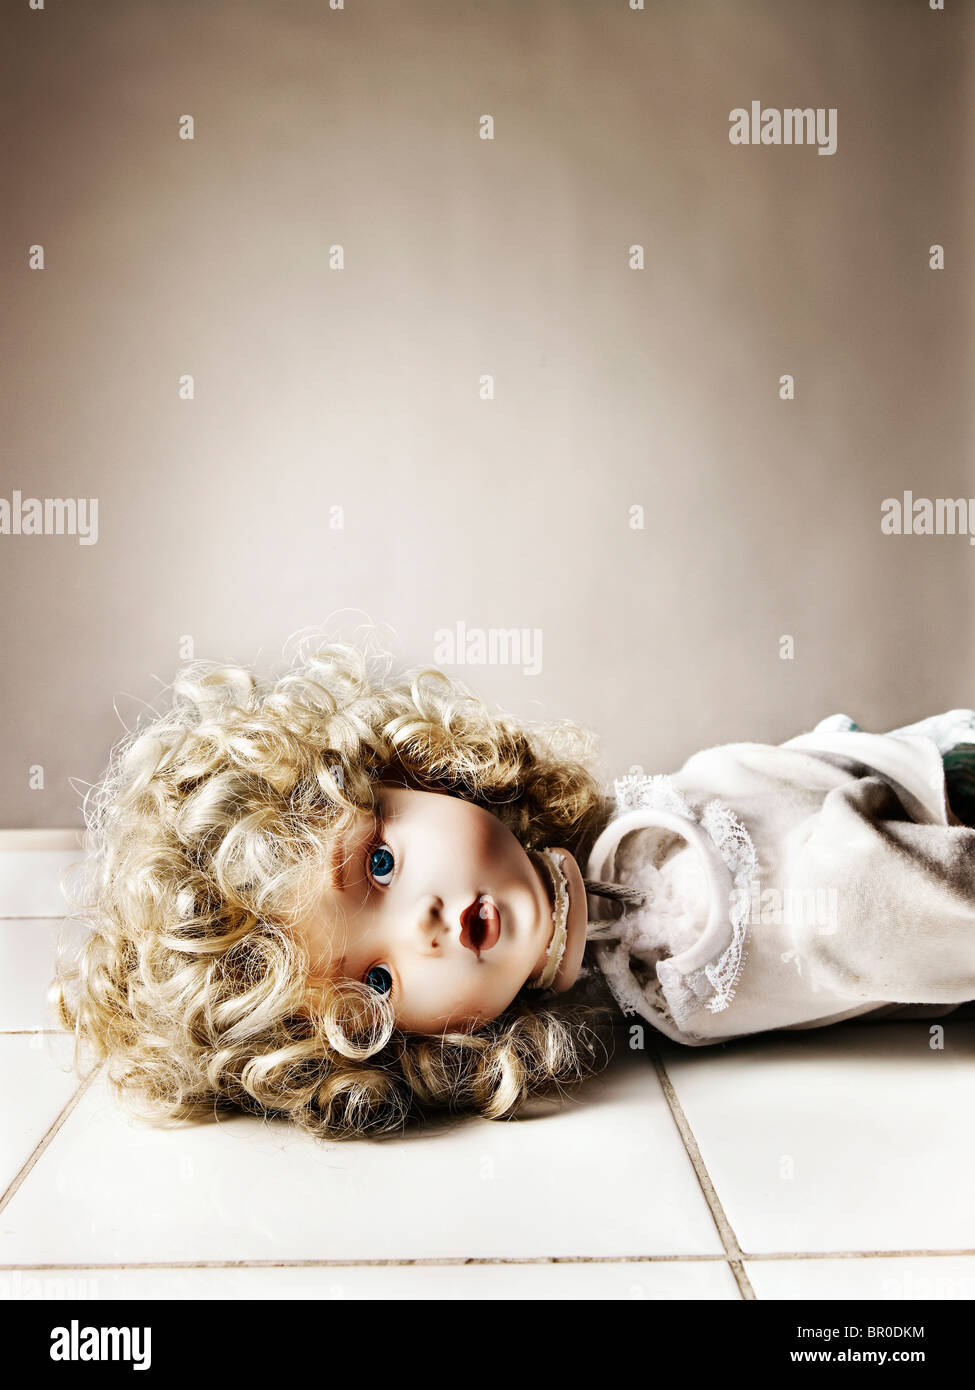 porcelain doll with a broken neck lying on a white tiled floor - Stock Image